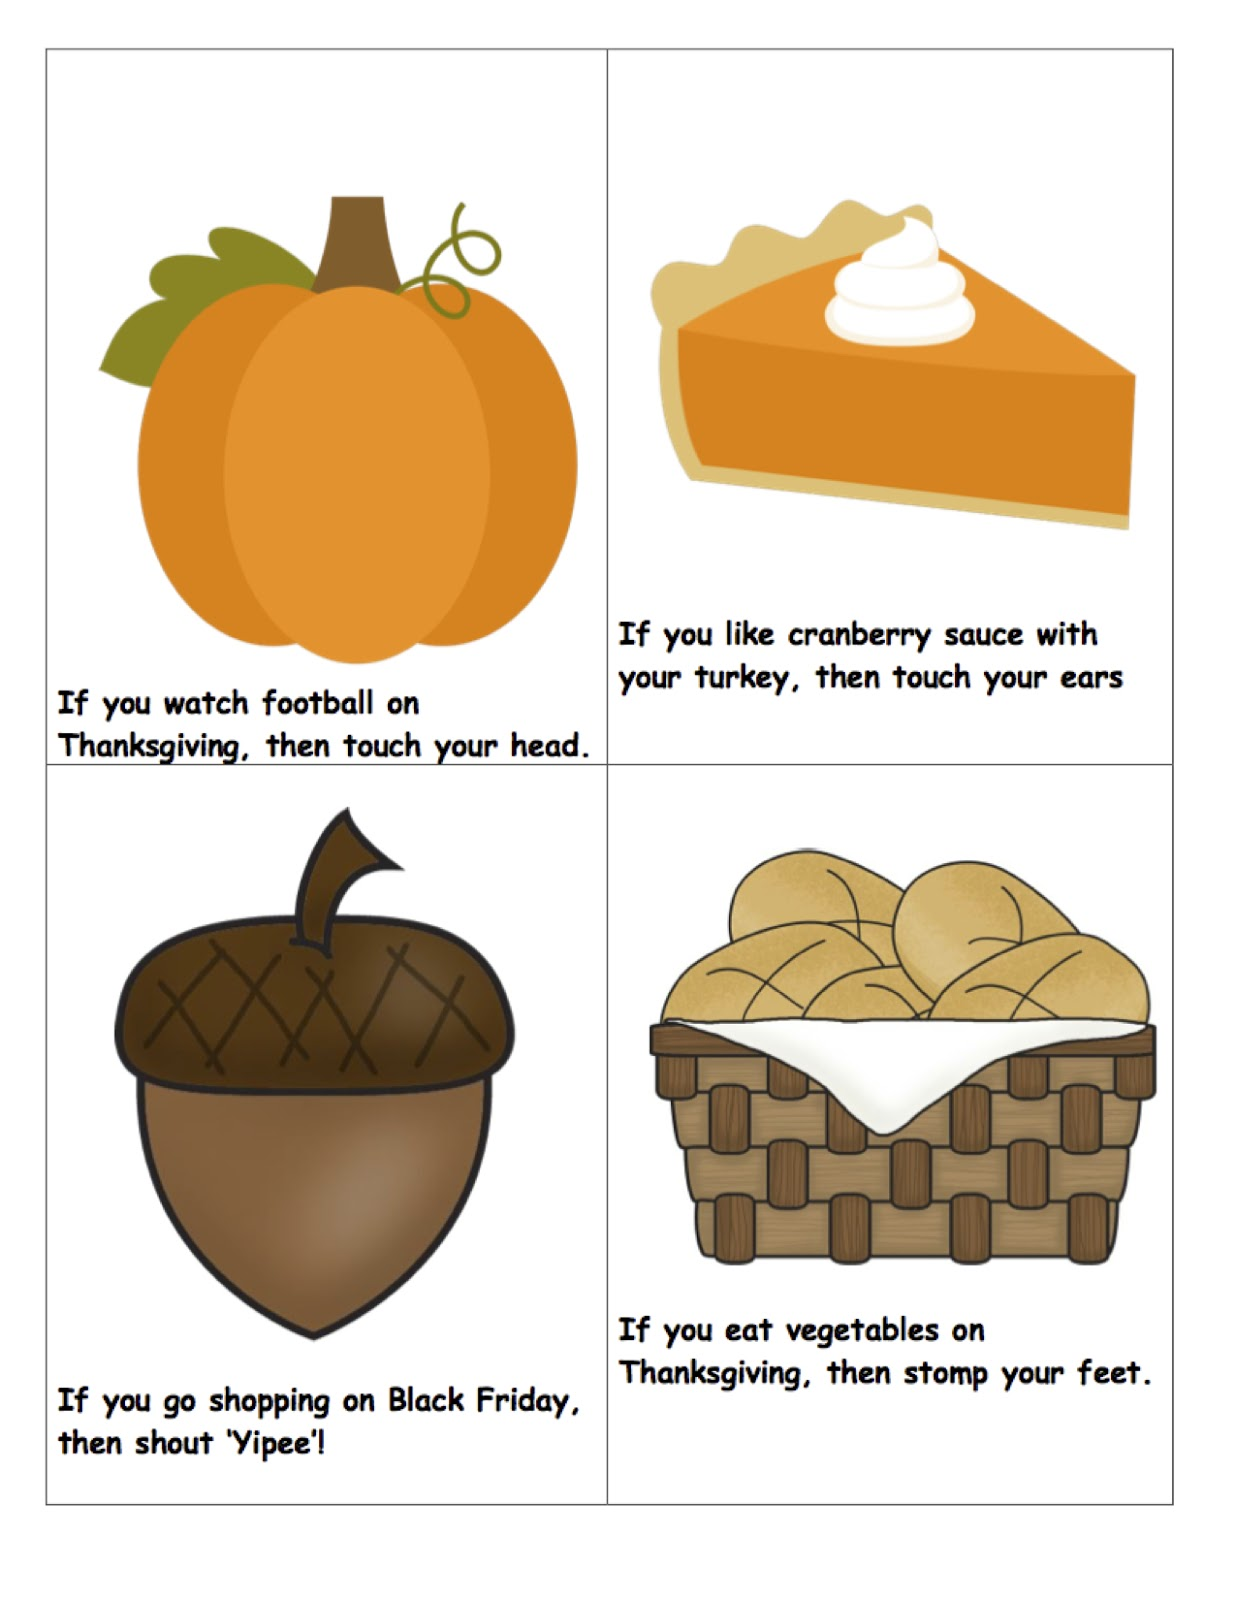 ... : Thanksgiv... Following Directions Activity For Adults